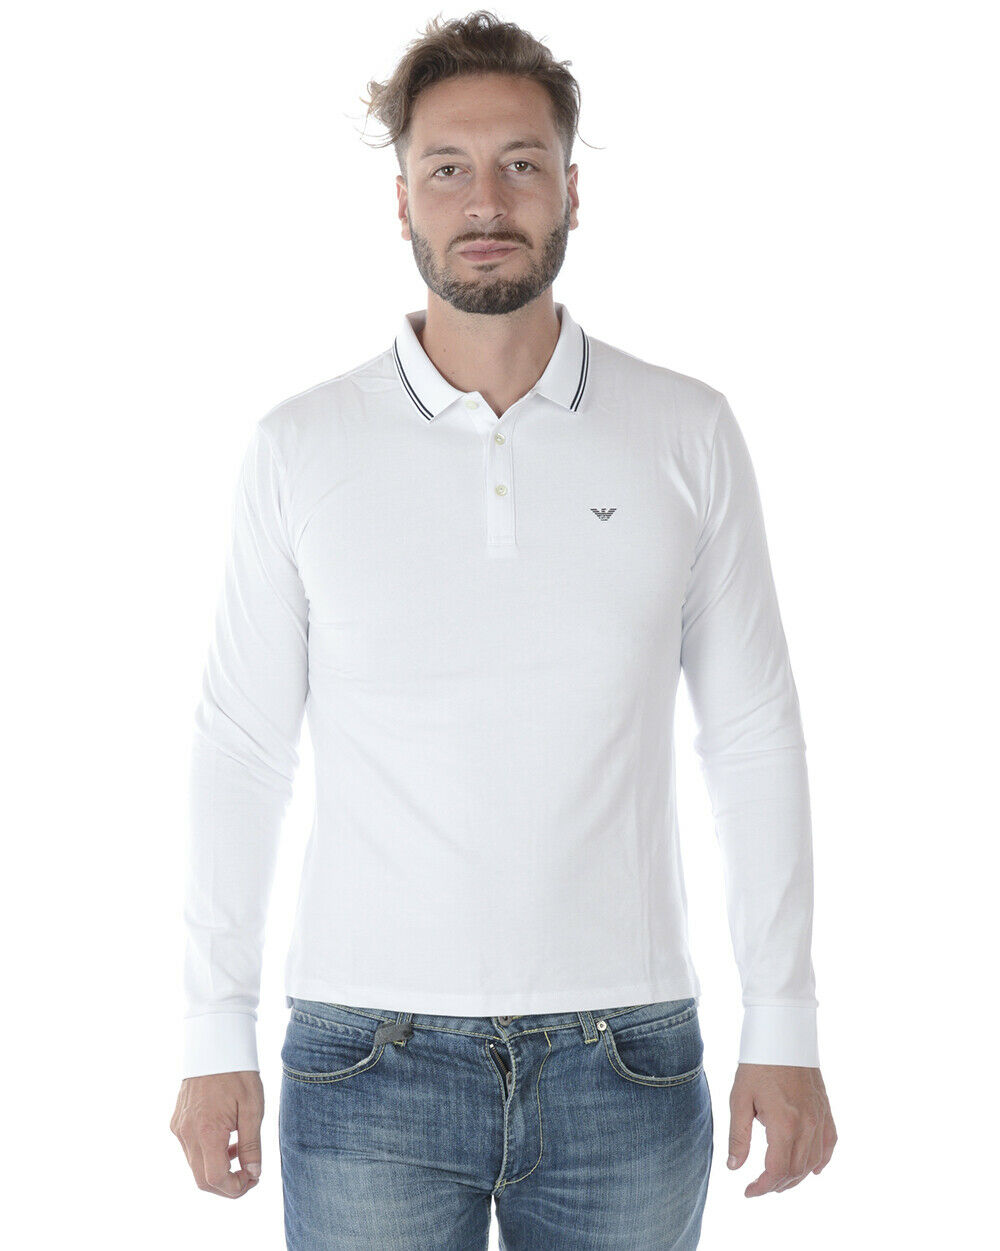 Emporio Armani Polo Shirt Cotton Man White 8N1F361JPTZ 100 Sz.M MAKE OFFER